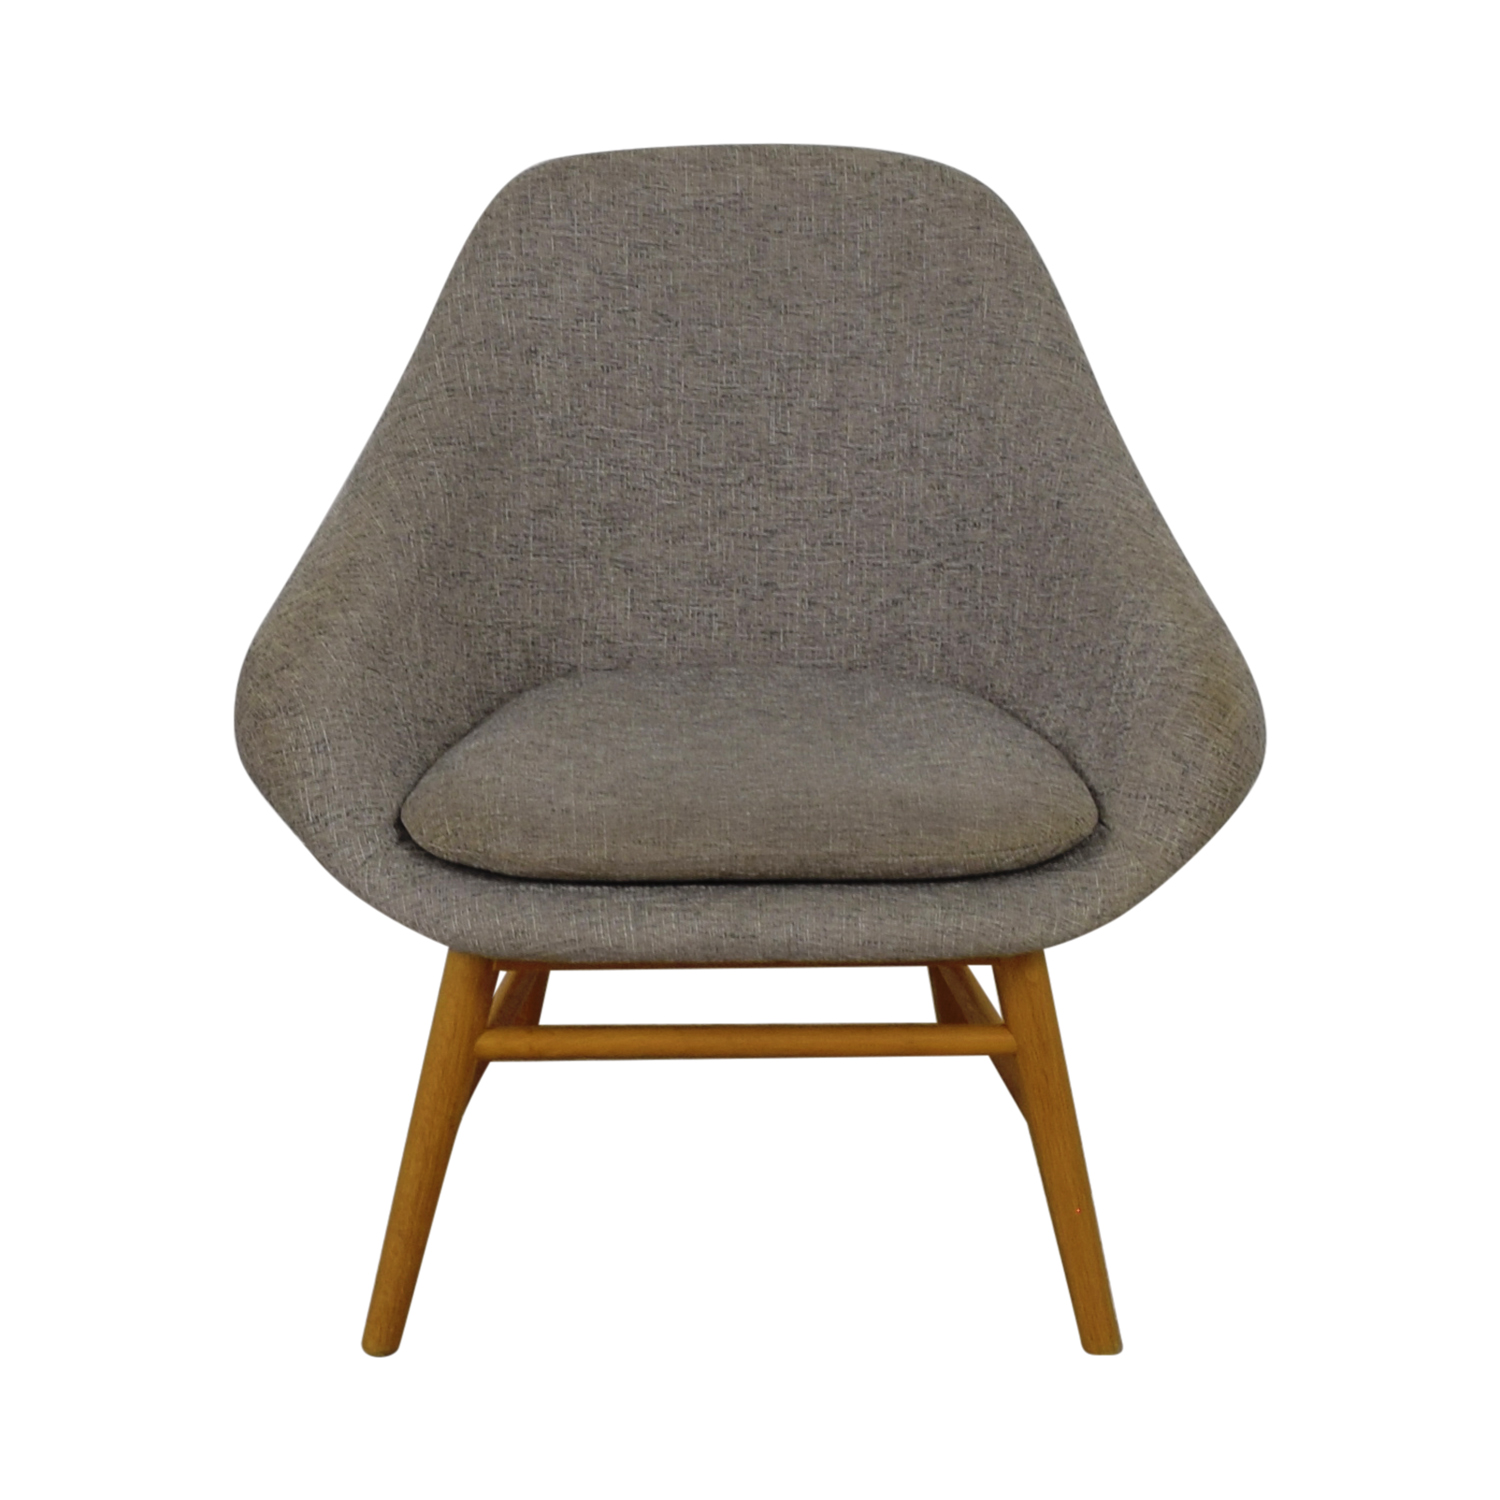 68 Off West Elm West Elm Grey Accent Chair Chairs